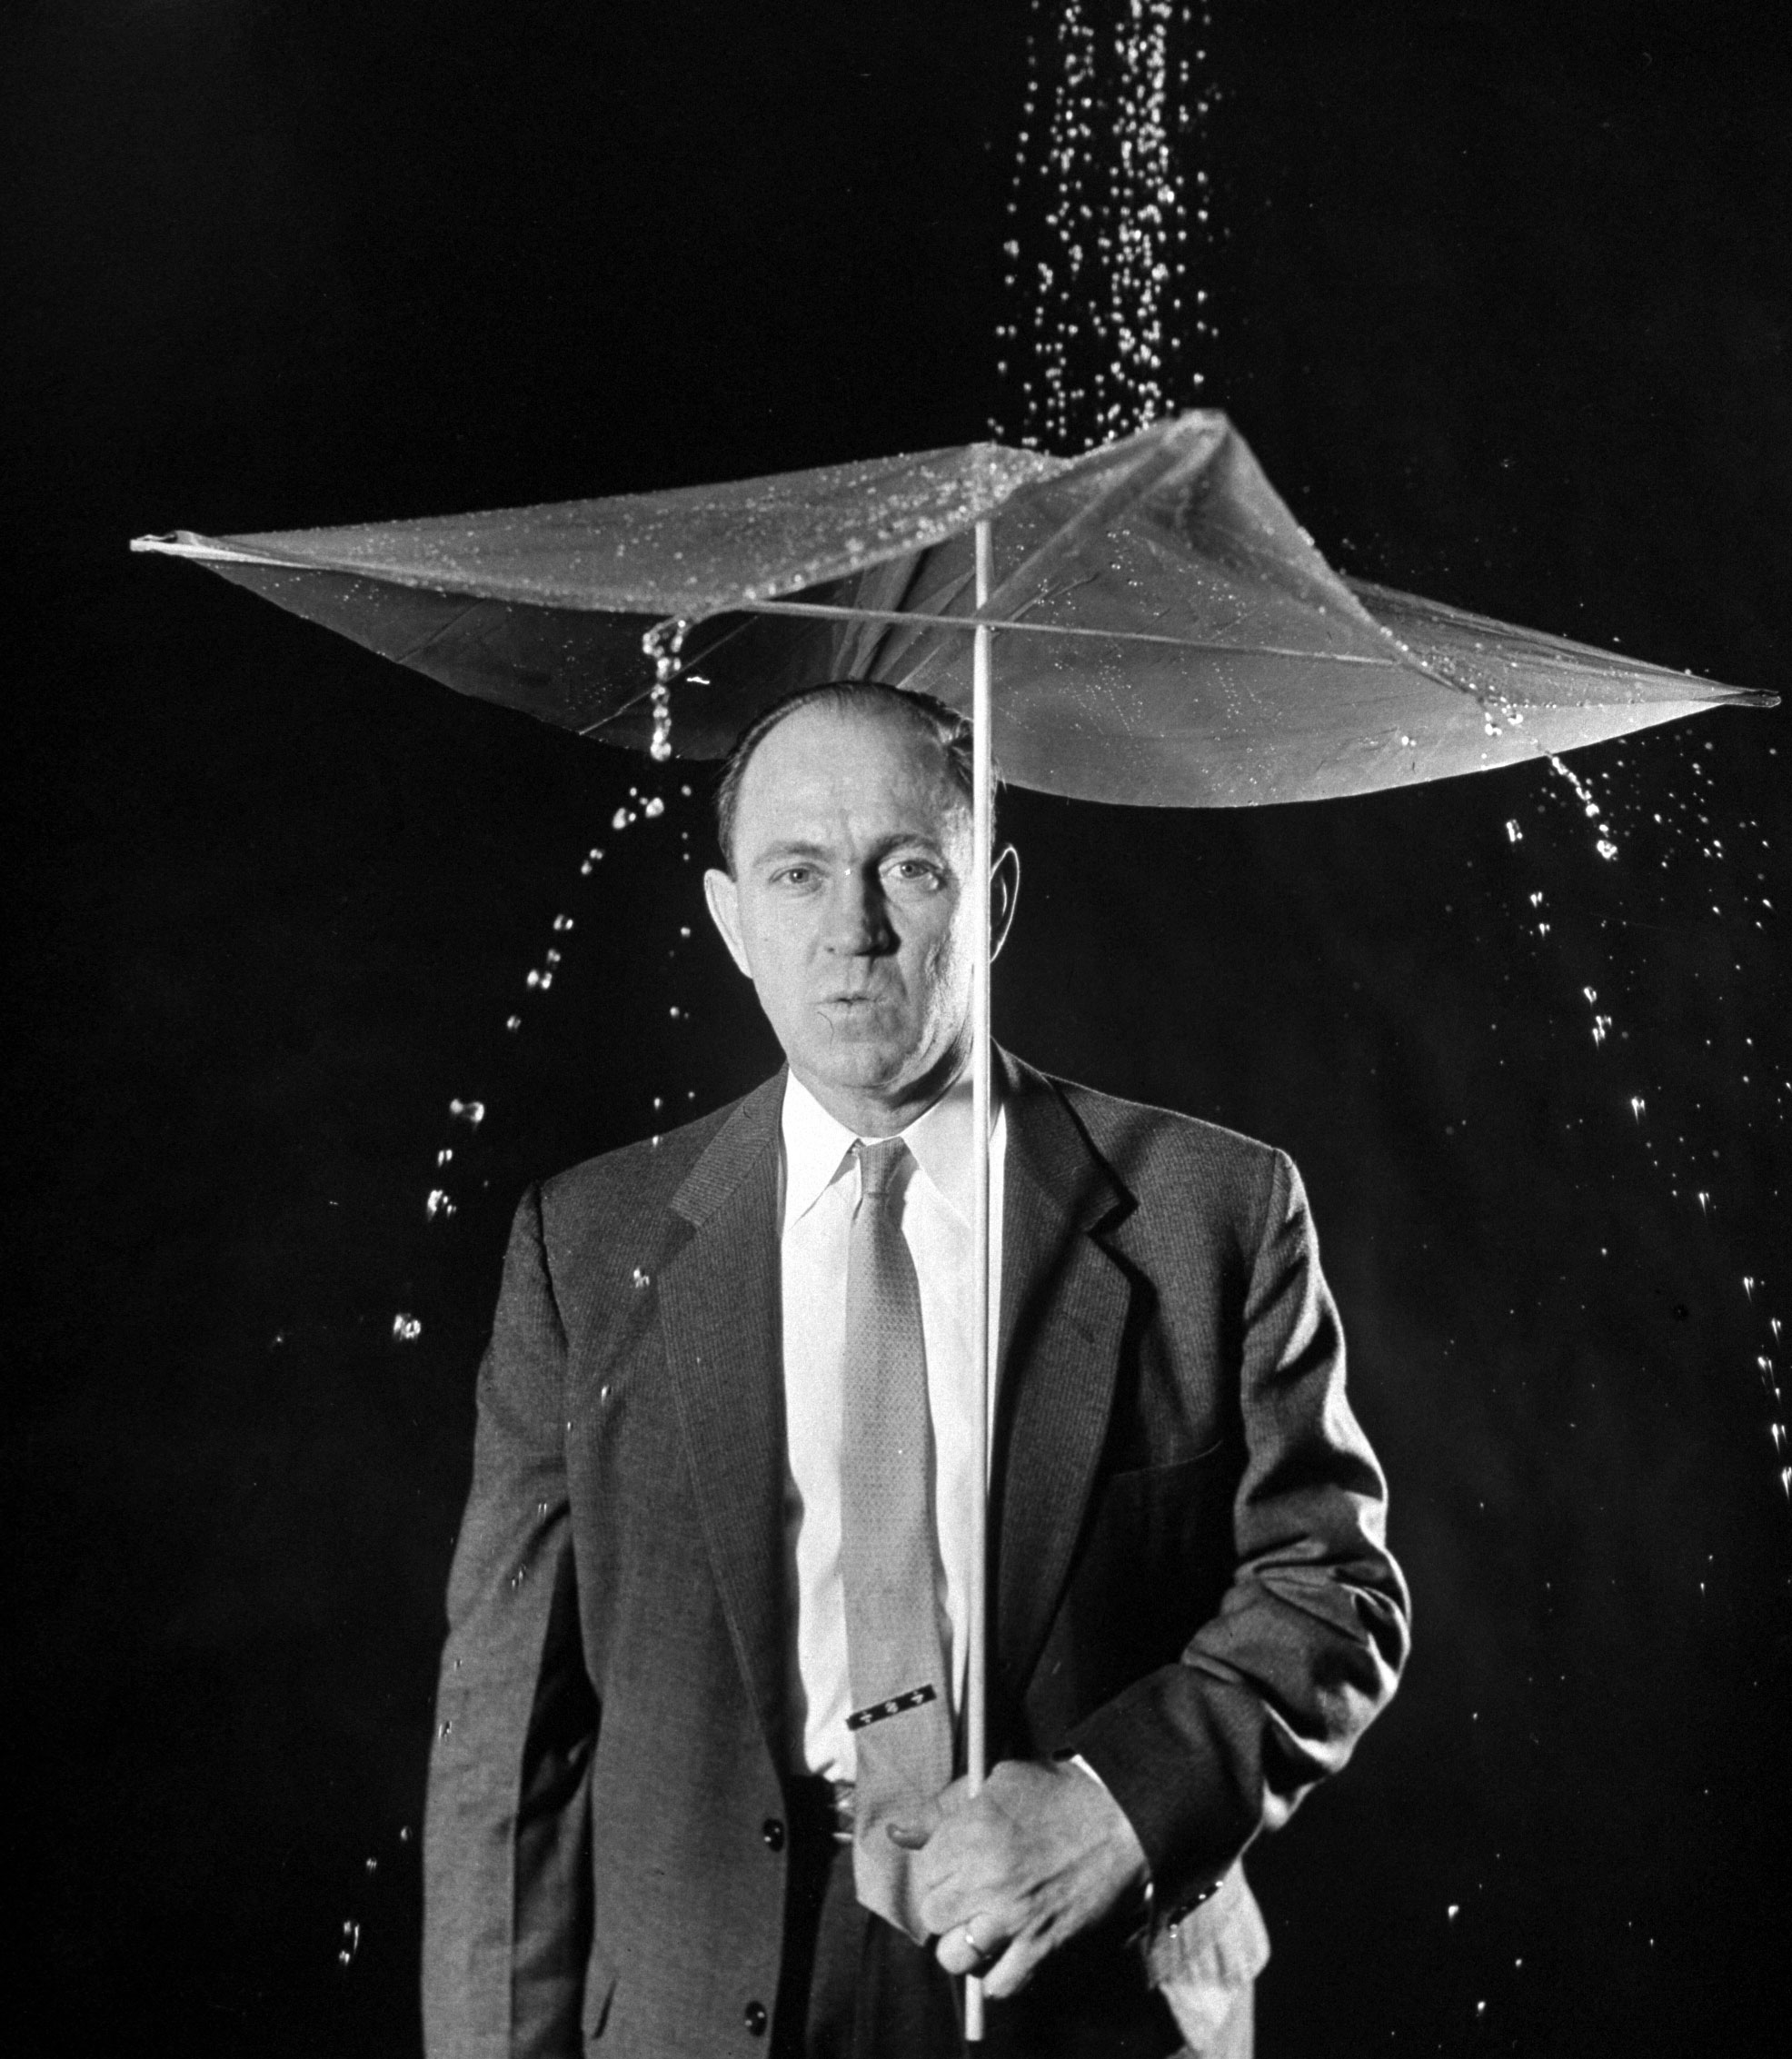 <b>Caption from LIFE.</b> Disposable plastic umbrella to be sold by stores to customers stranded in sudden showers by the inventor Harry Heavner.